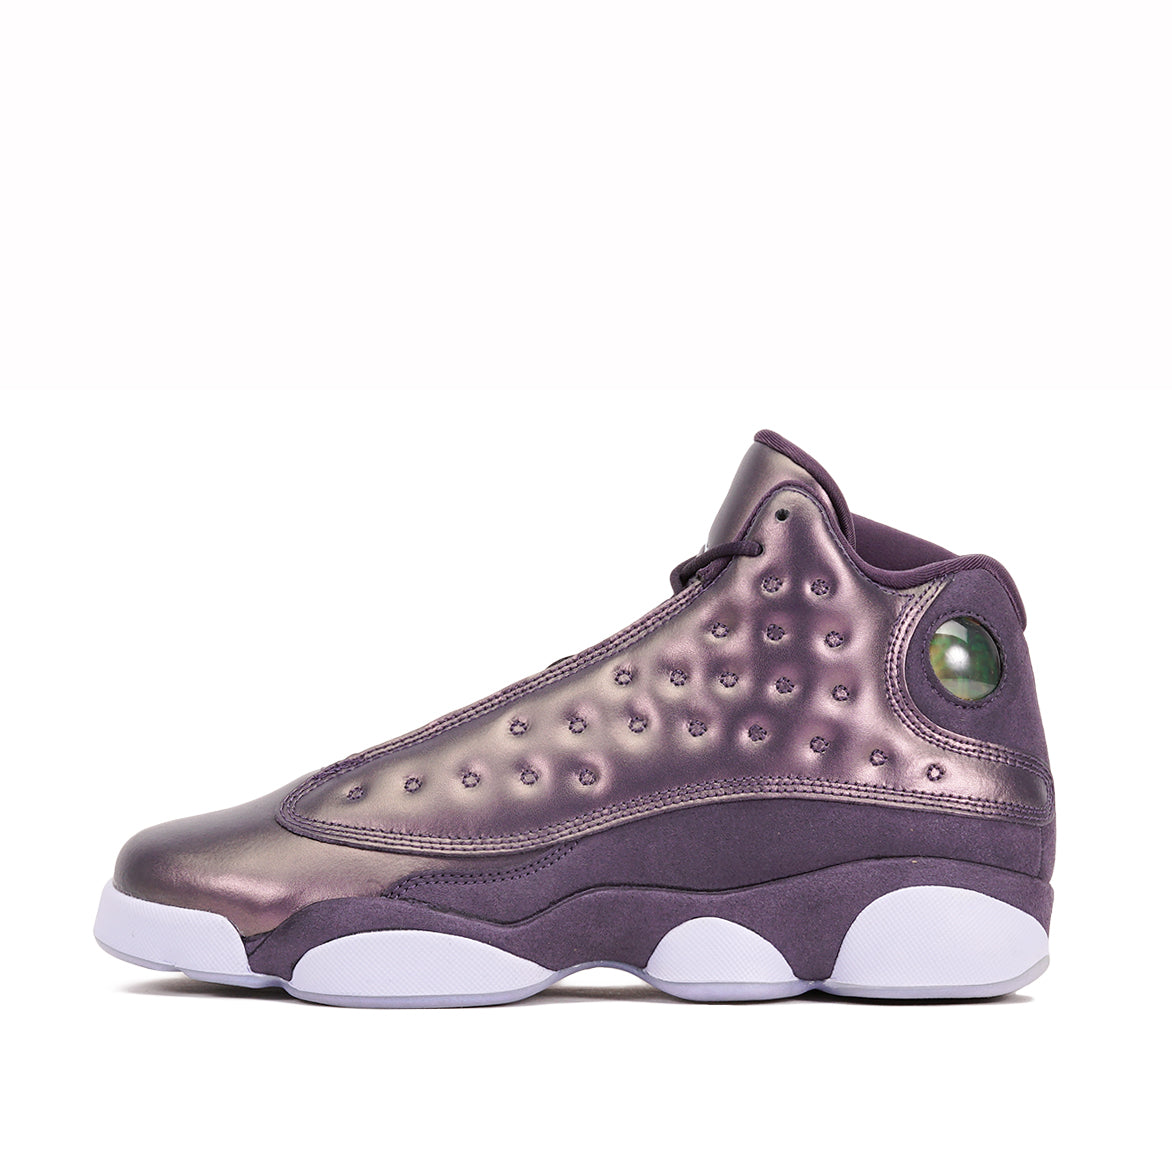 528674dd81ee44 AIR JORDAN 13 RETRO PREM HC (GS)